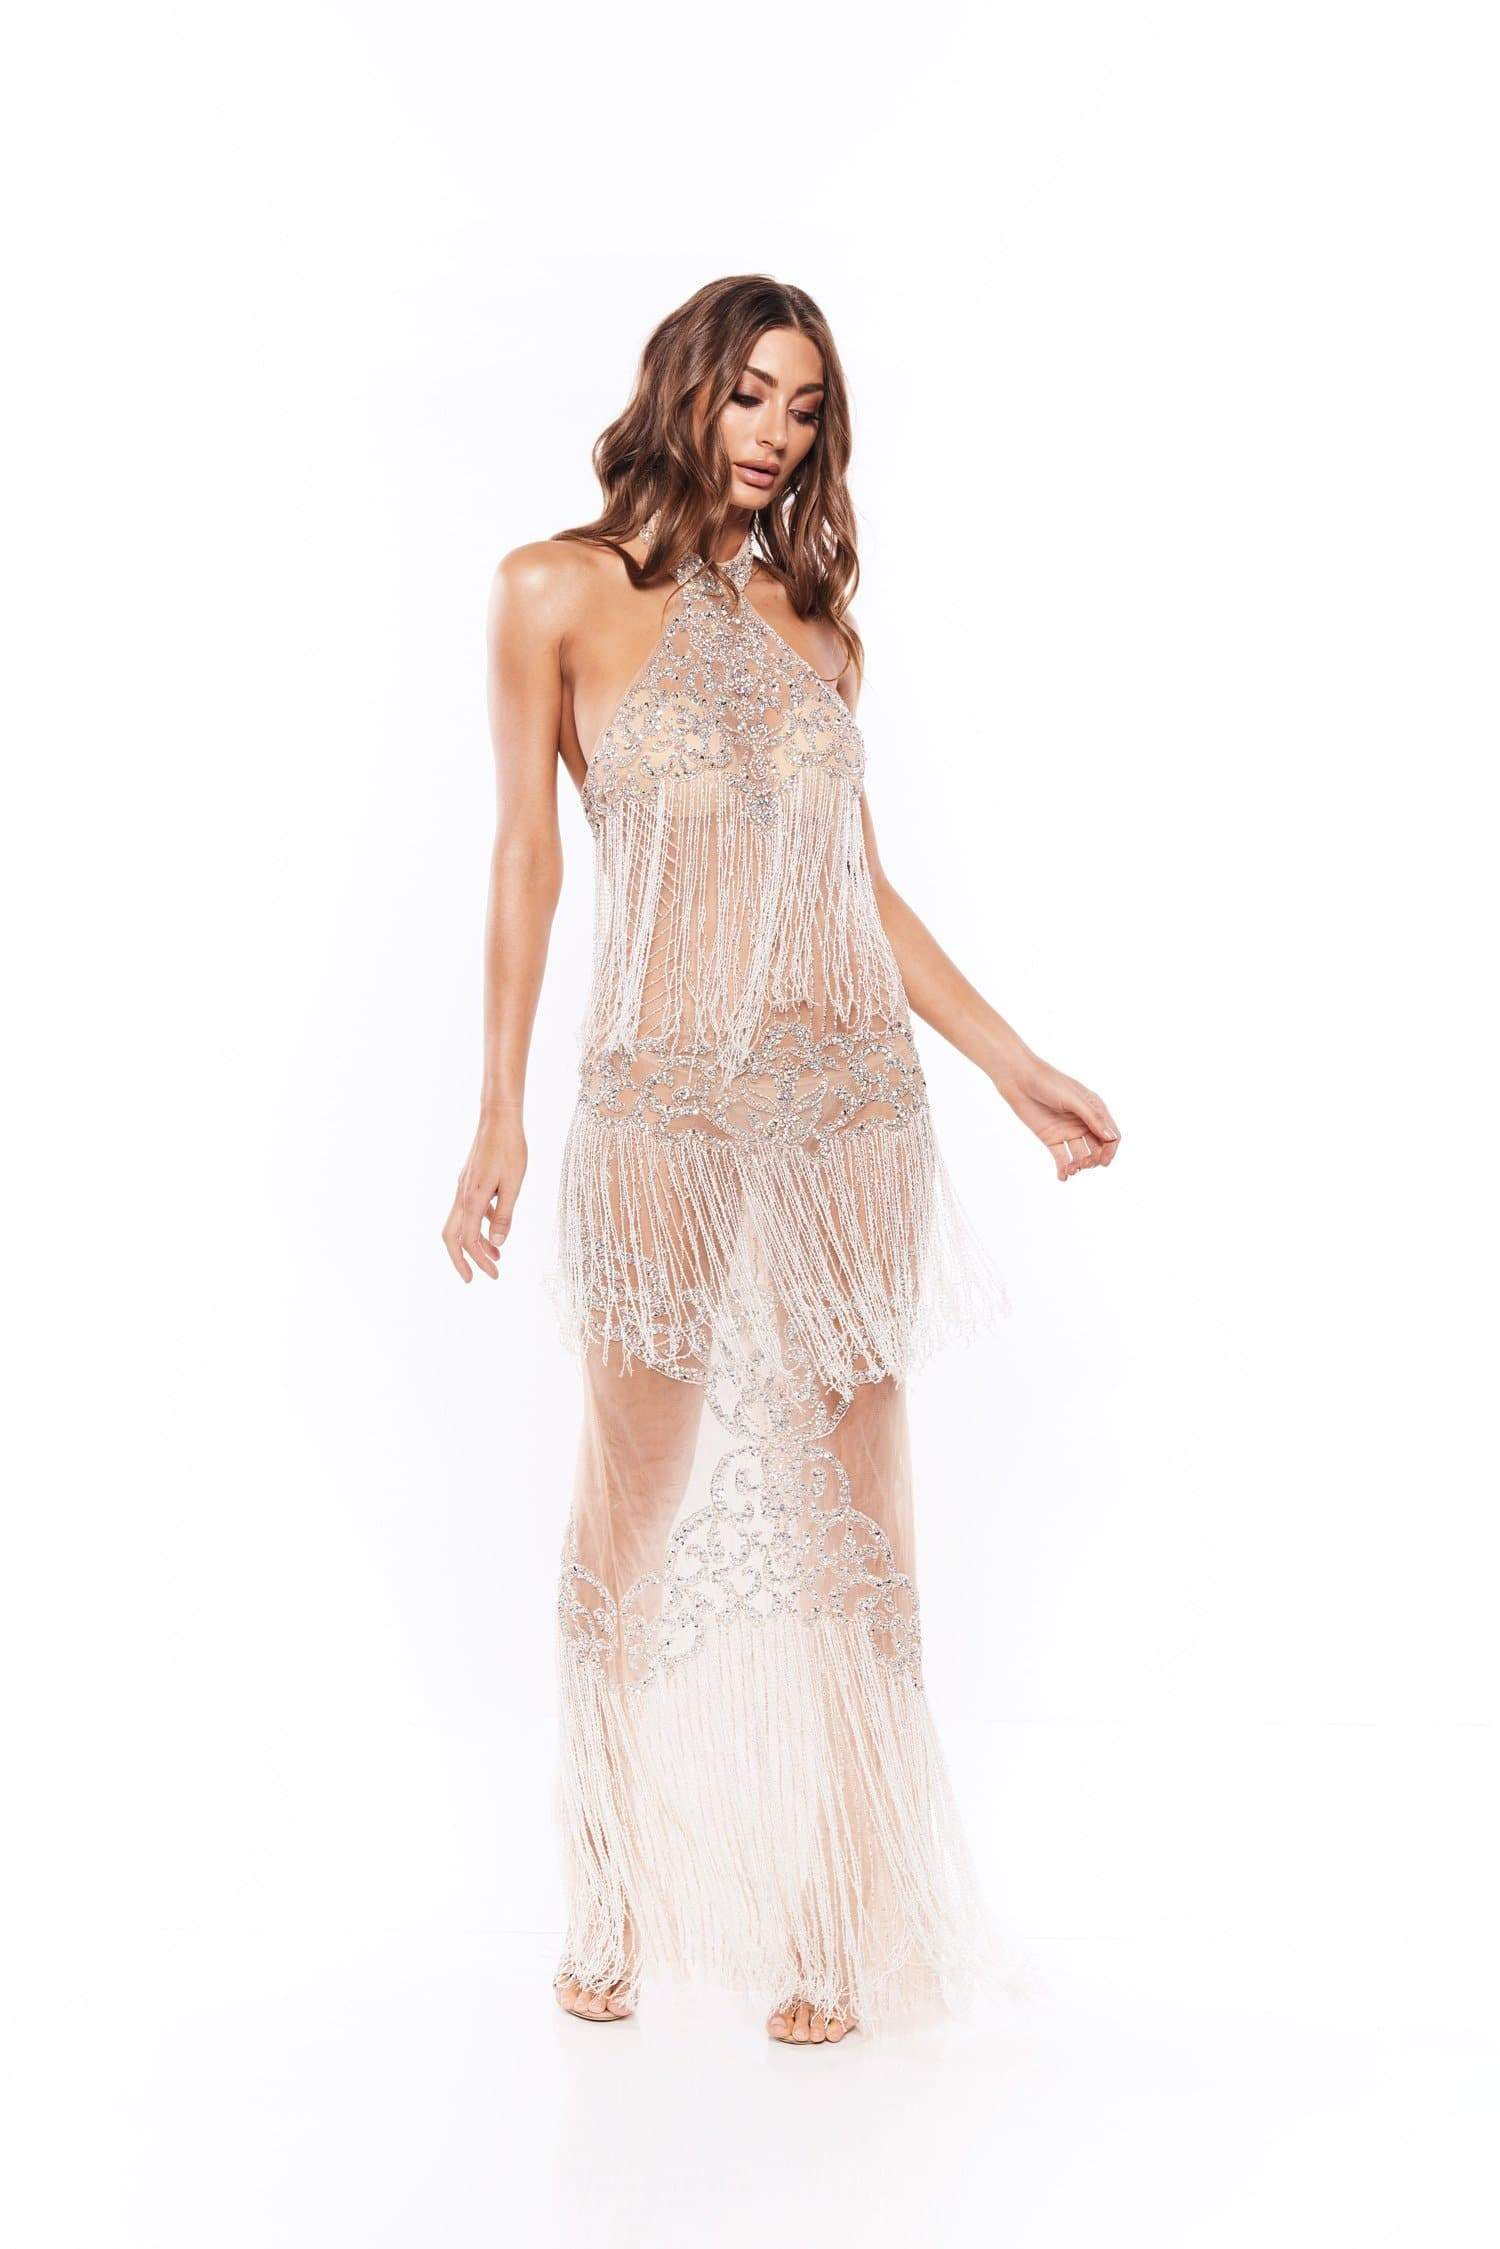 Rocalicia - Sheer Halter Neck Beaded Gown with Tassels